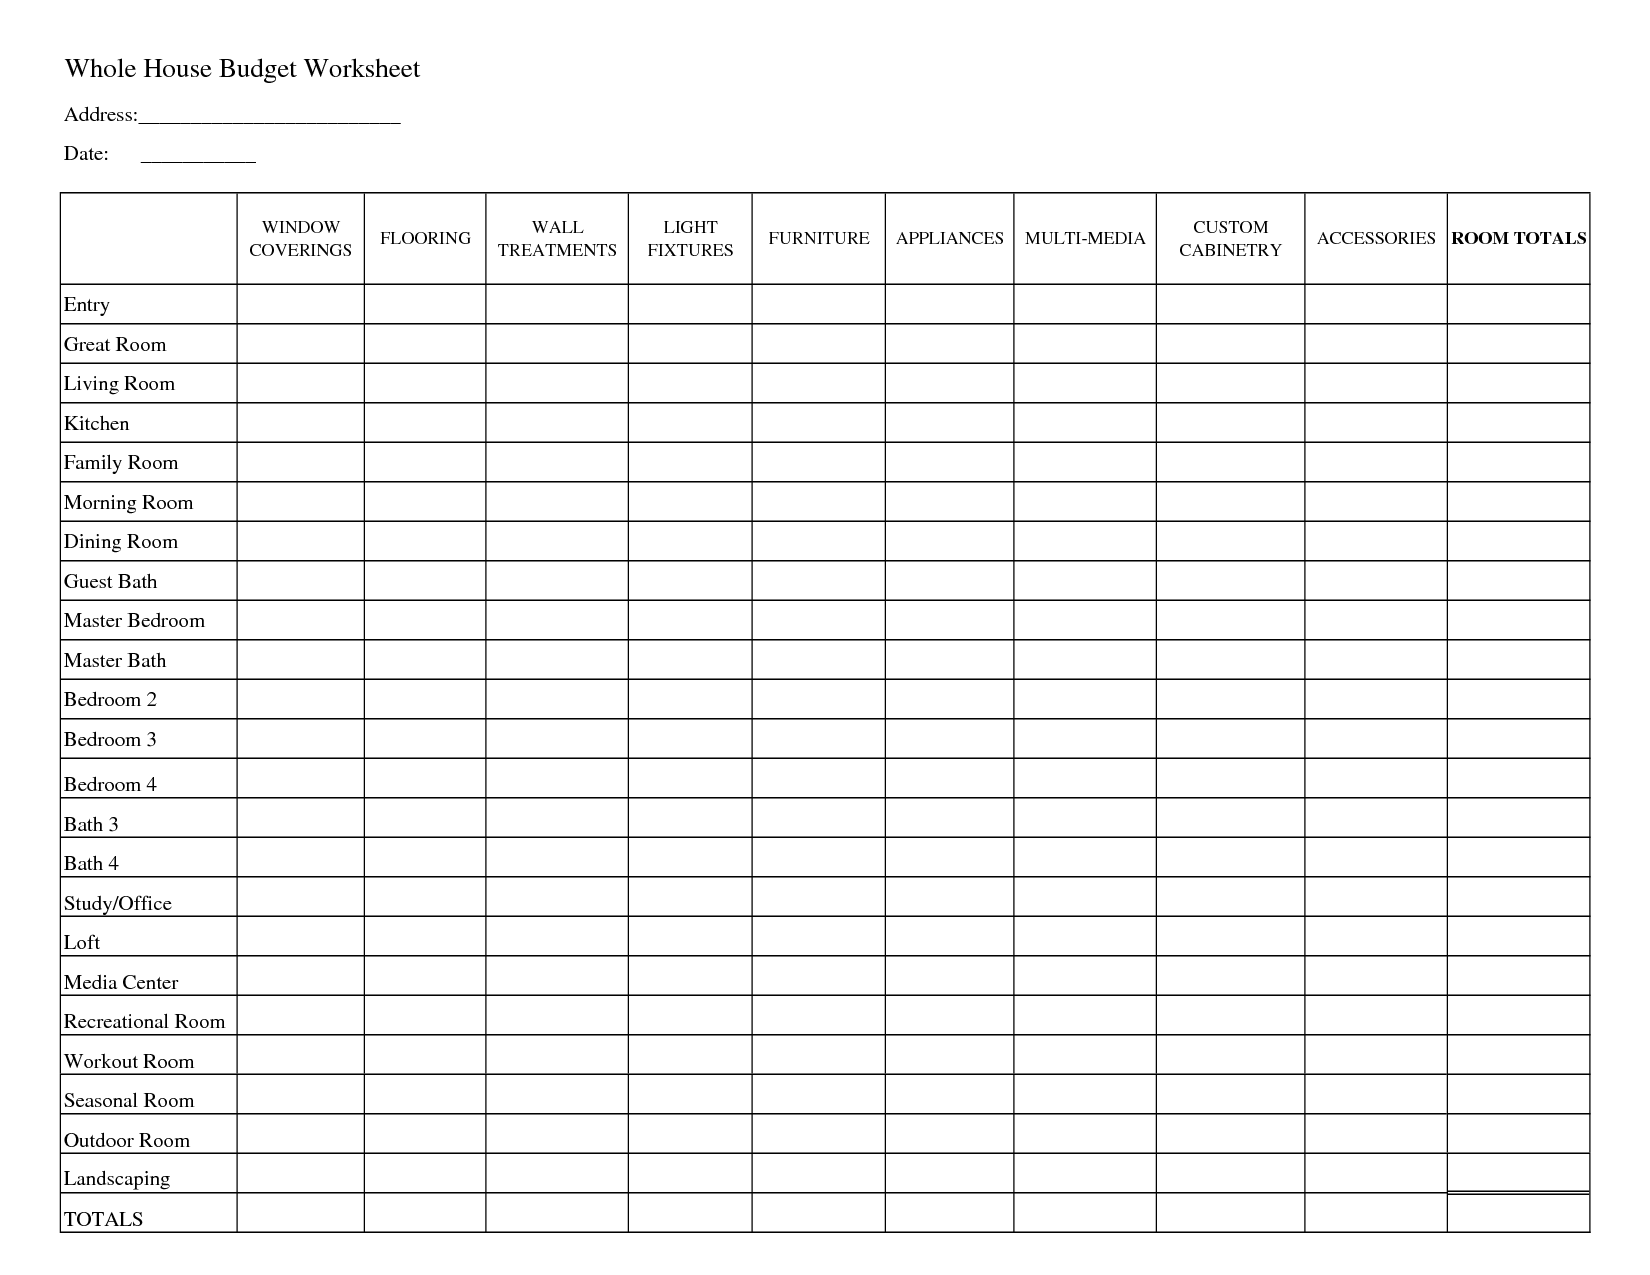 Worksheets Household Budget Worksheets printable household budget worksheets whole house worksheet worksheet